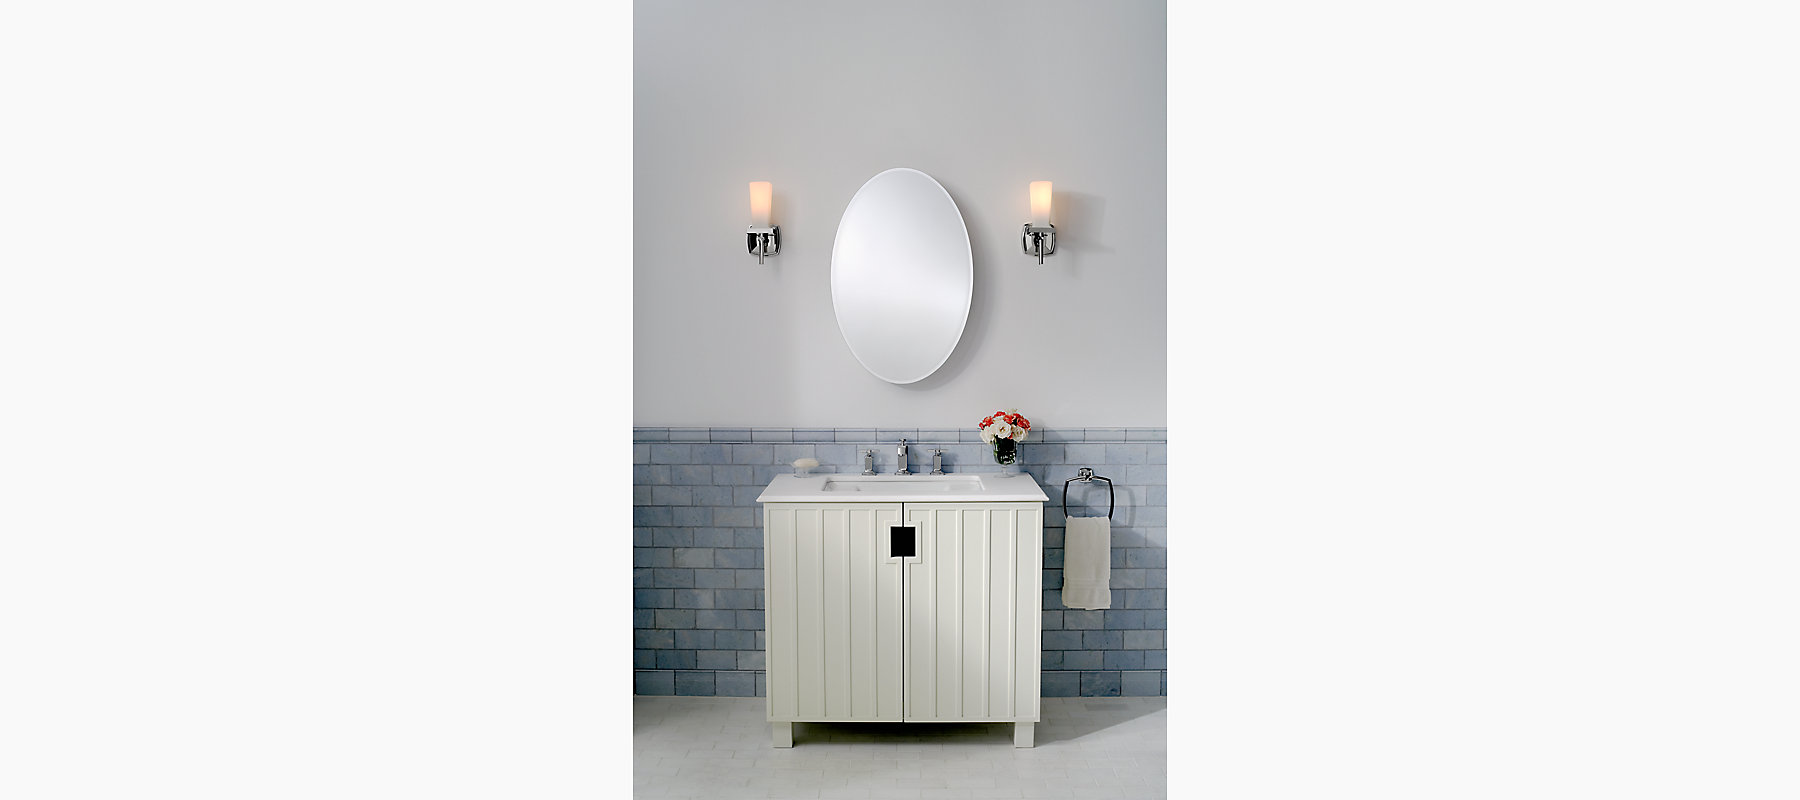 20-Inch Medicine Cabinet With Oval Mirrored Door